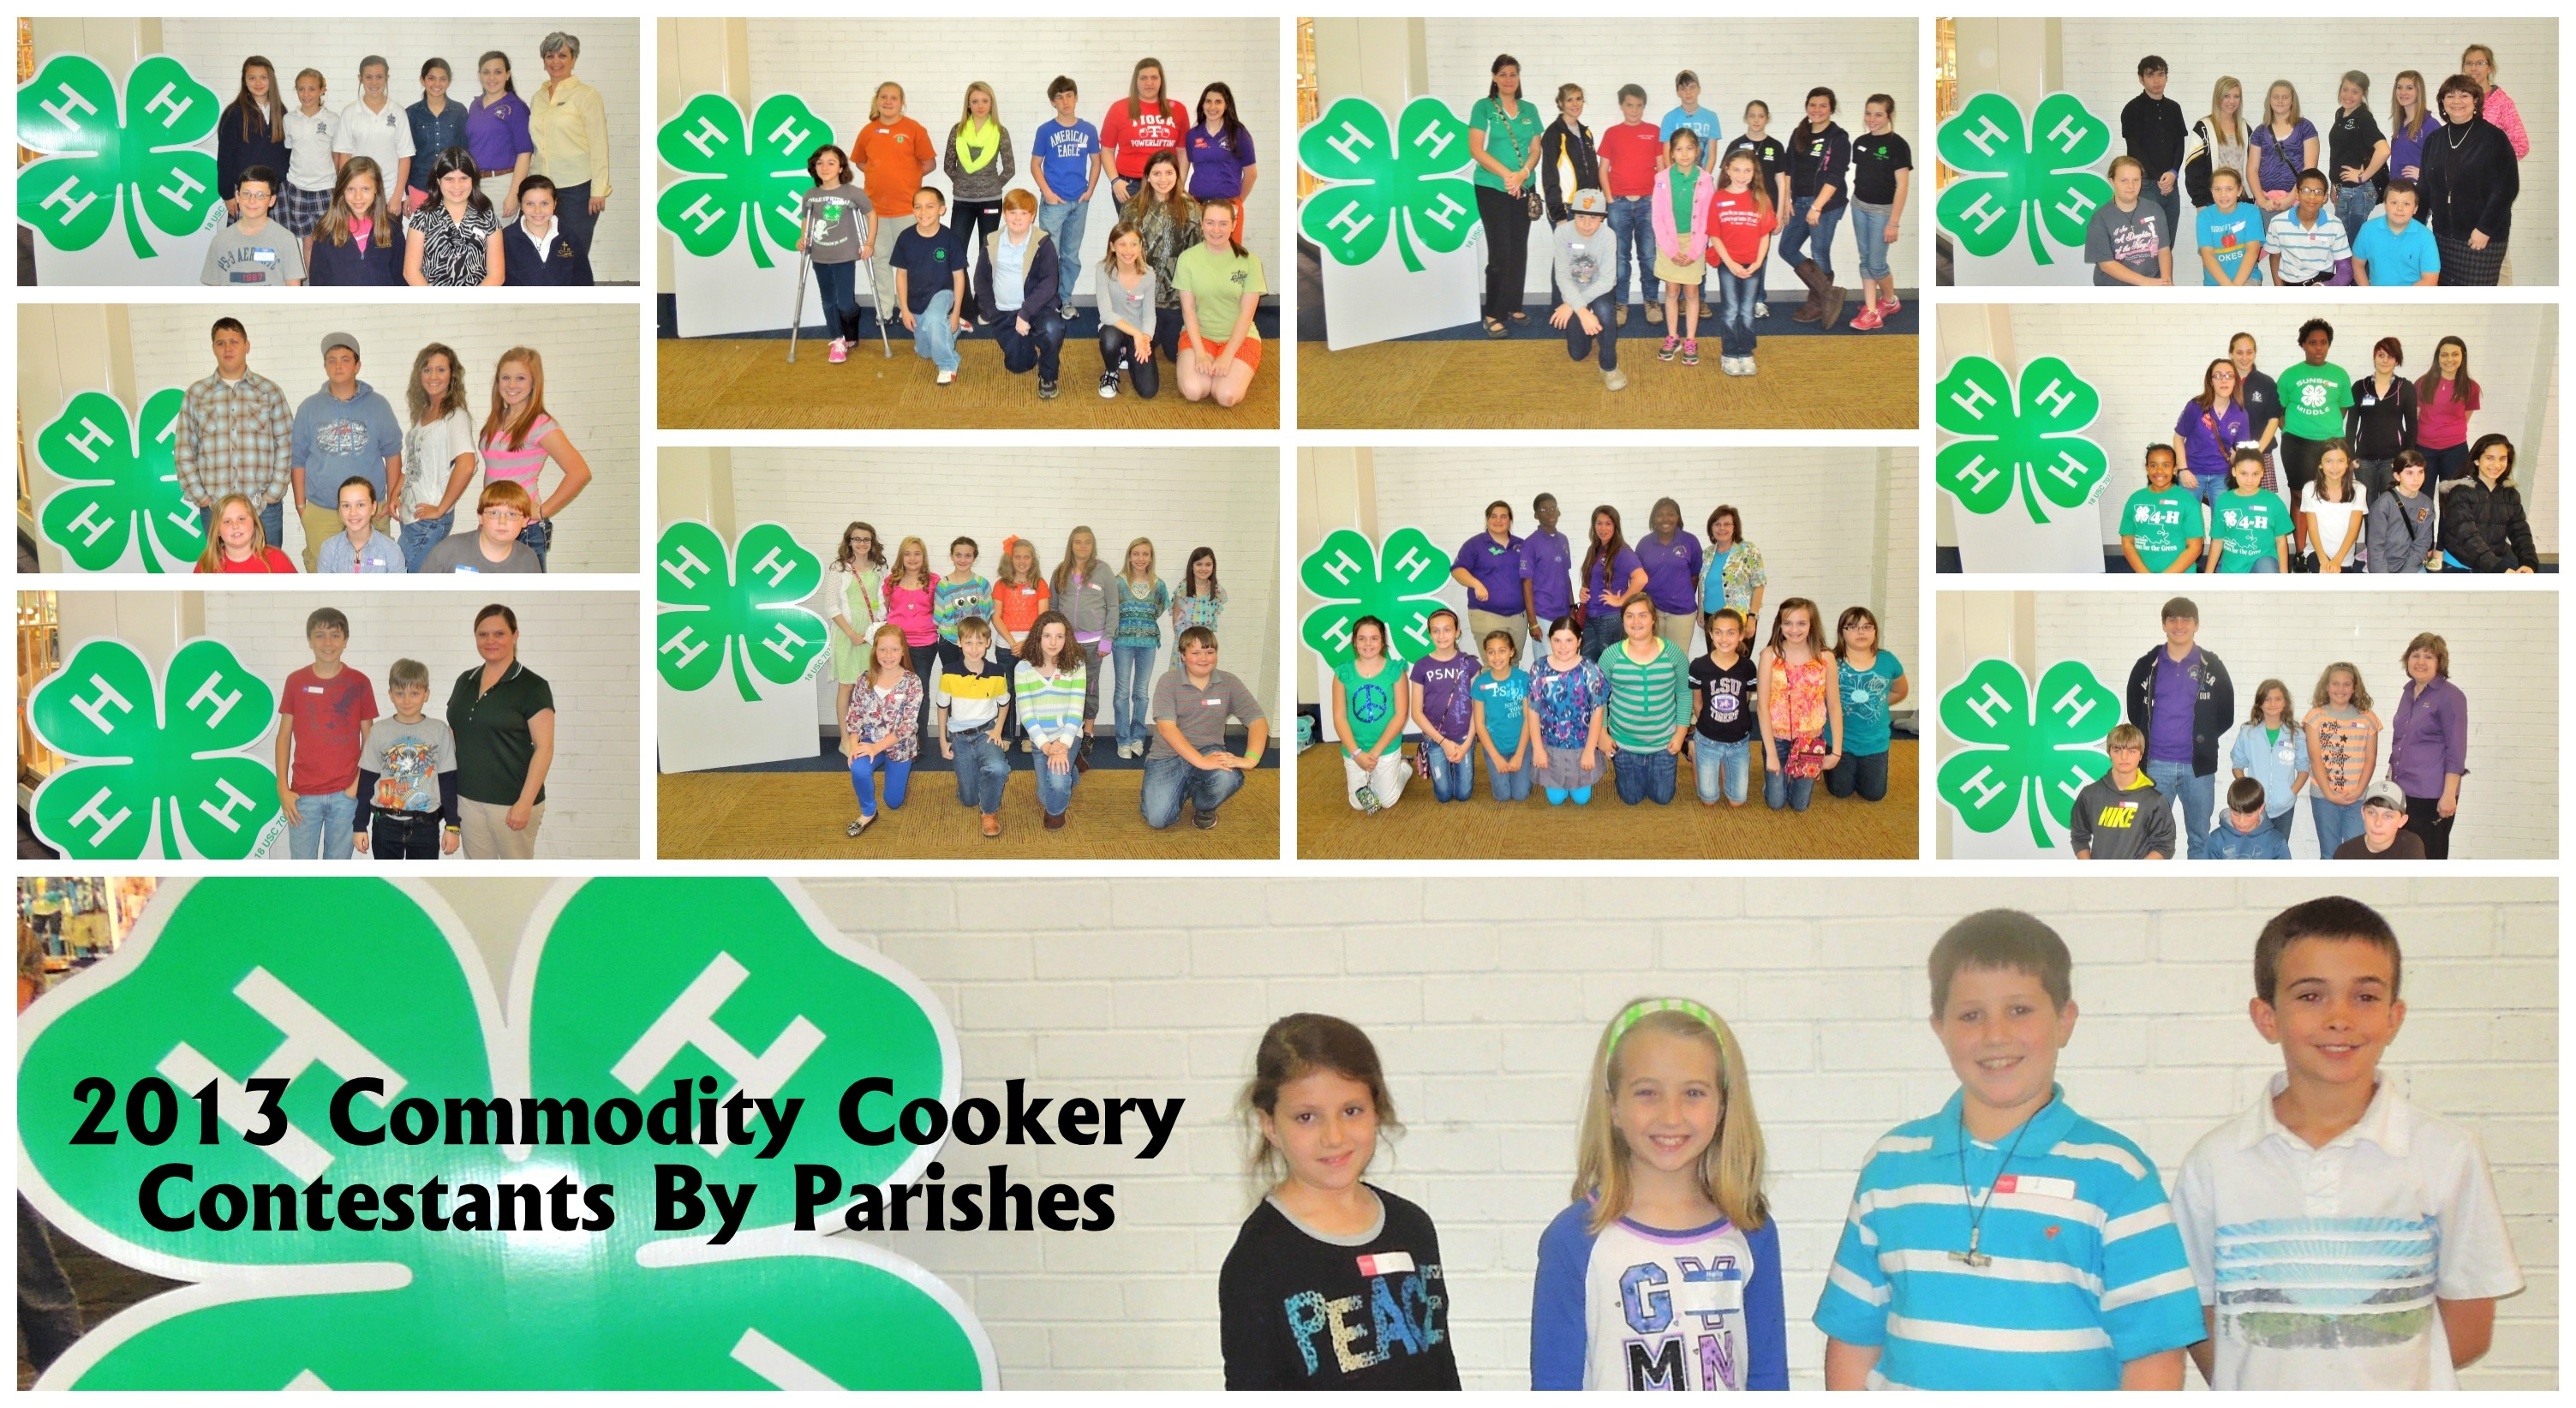 Commodity Cookery Contestants